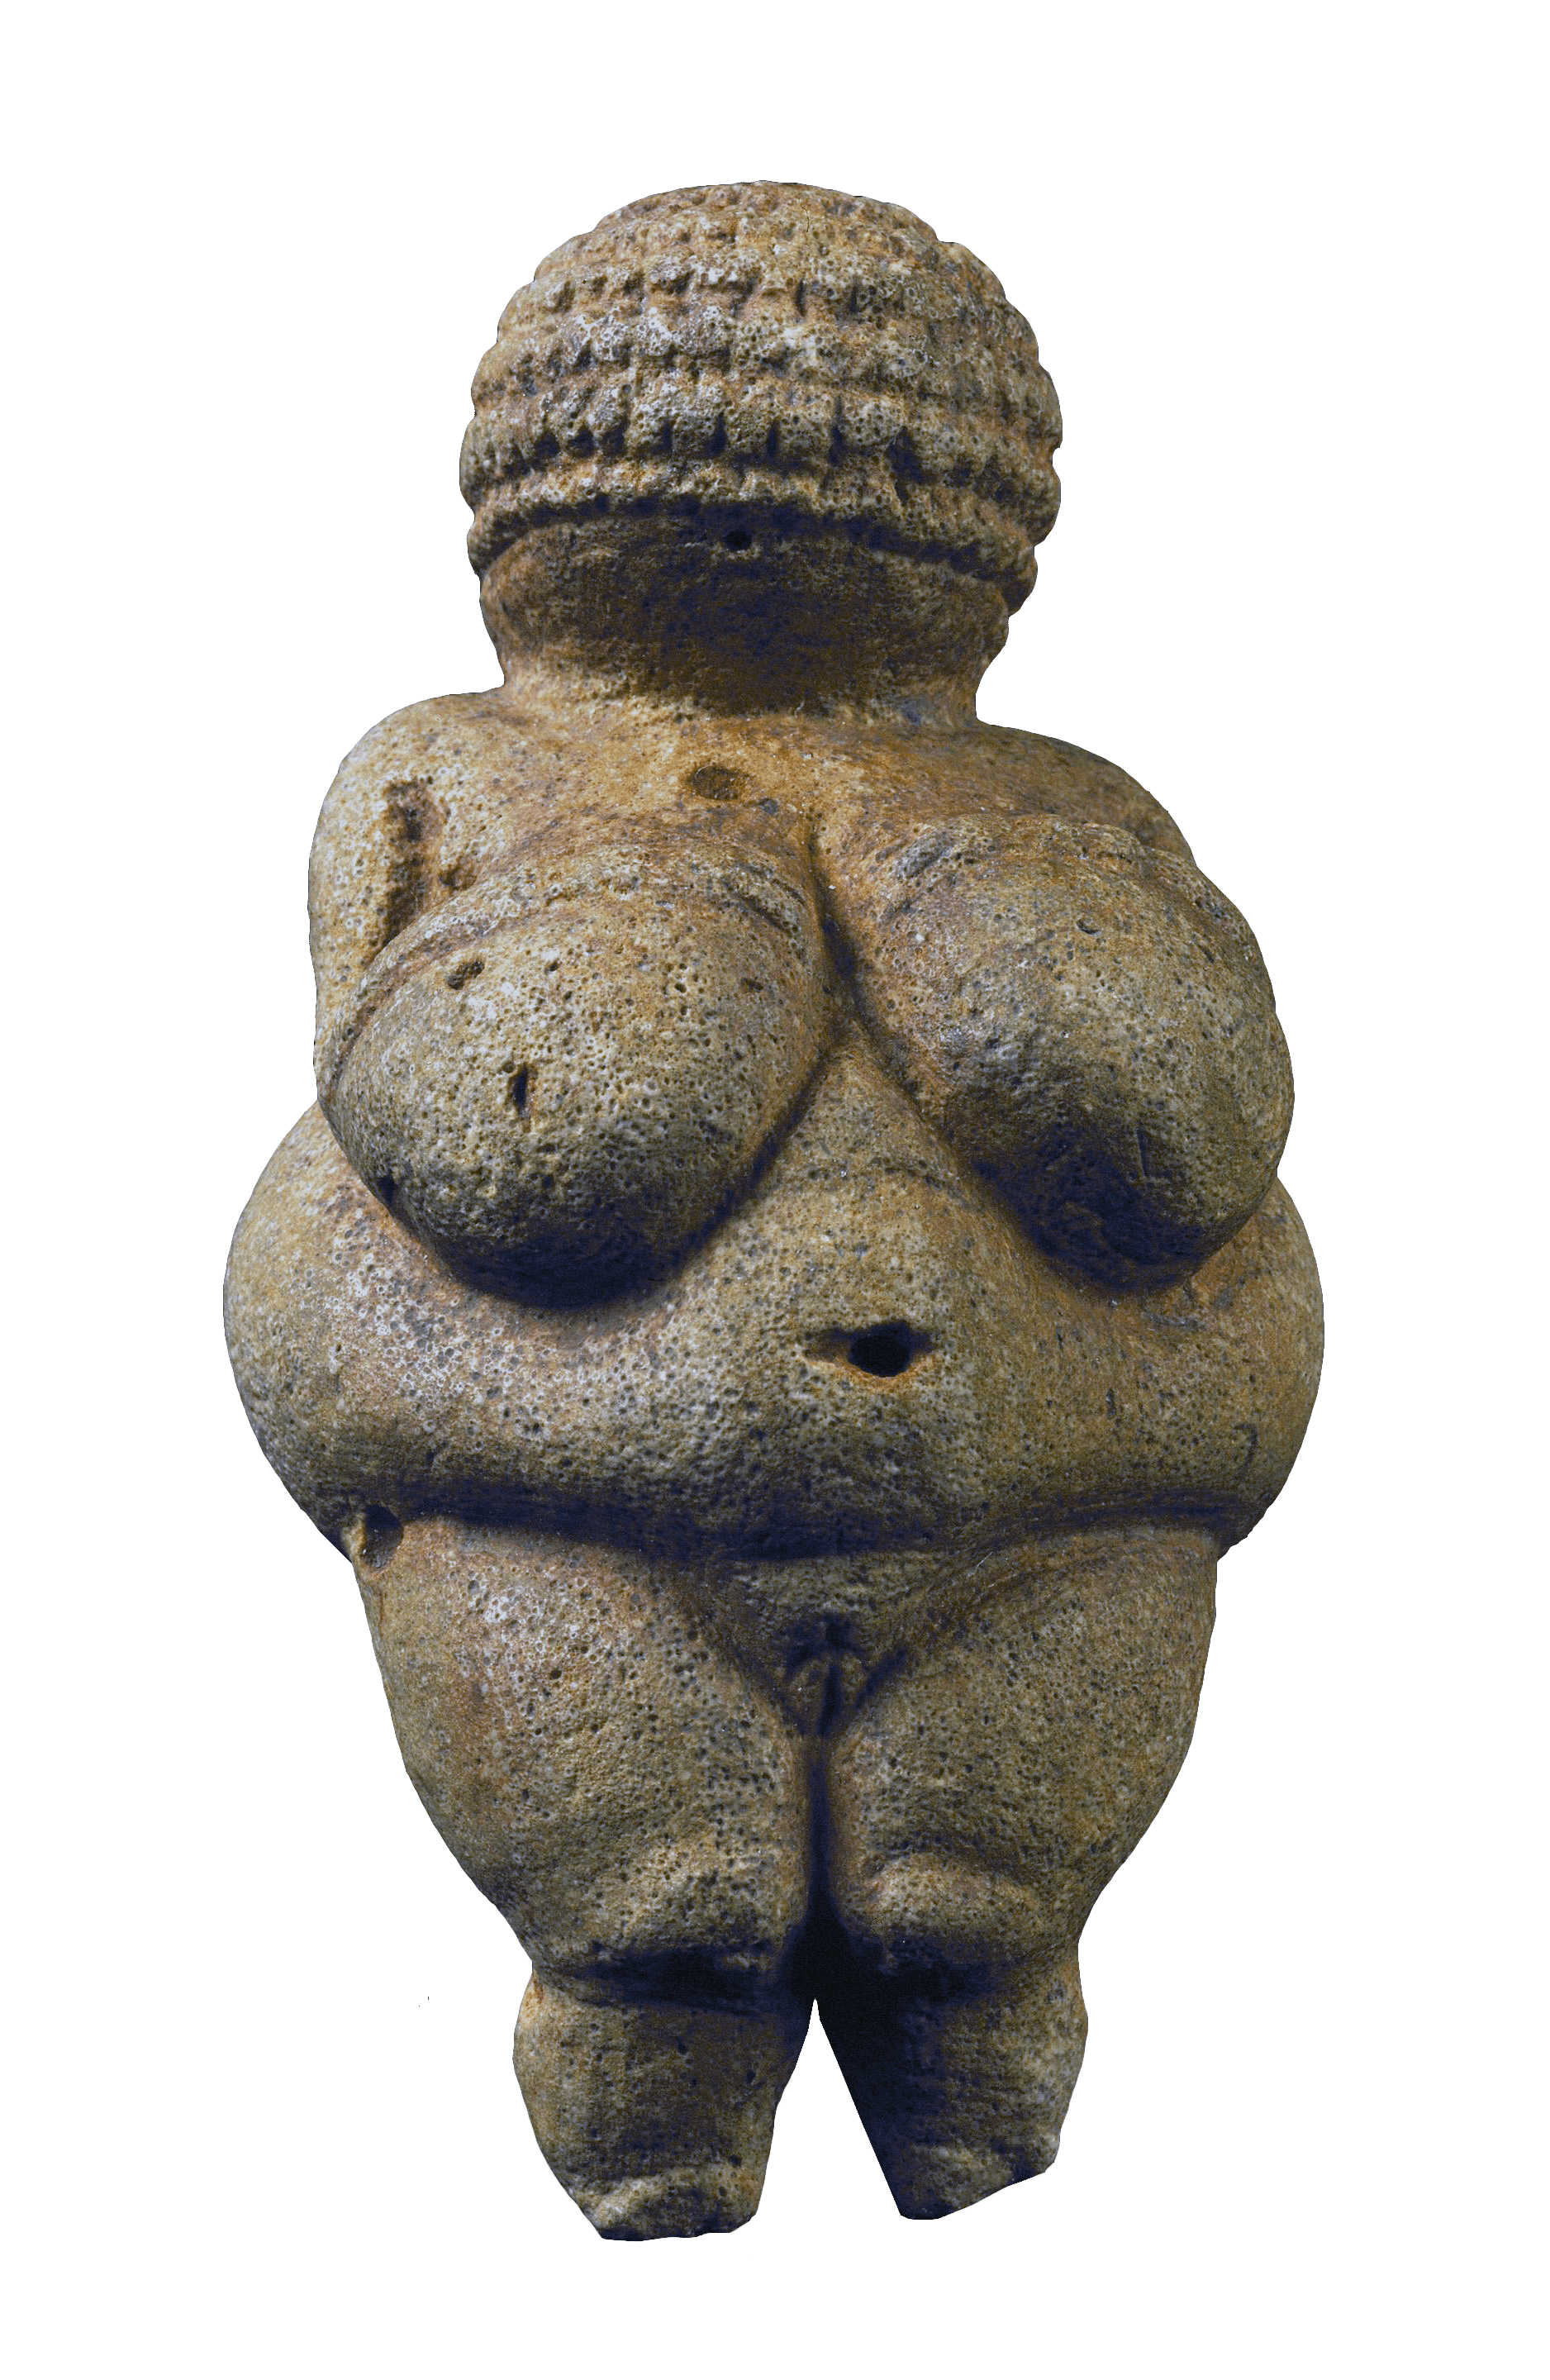 Venus of Willendorf, 25000 BCE — Prehistory, Vienna Museum of Natural History